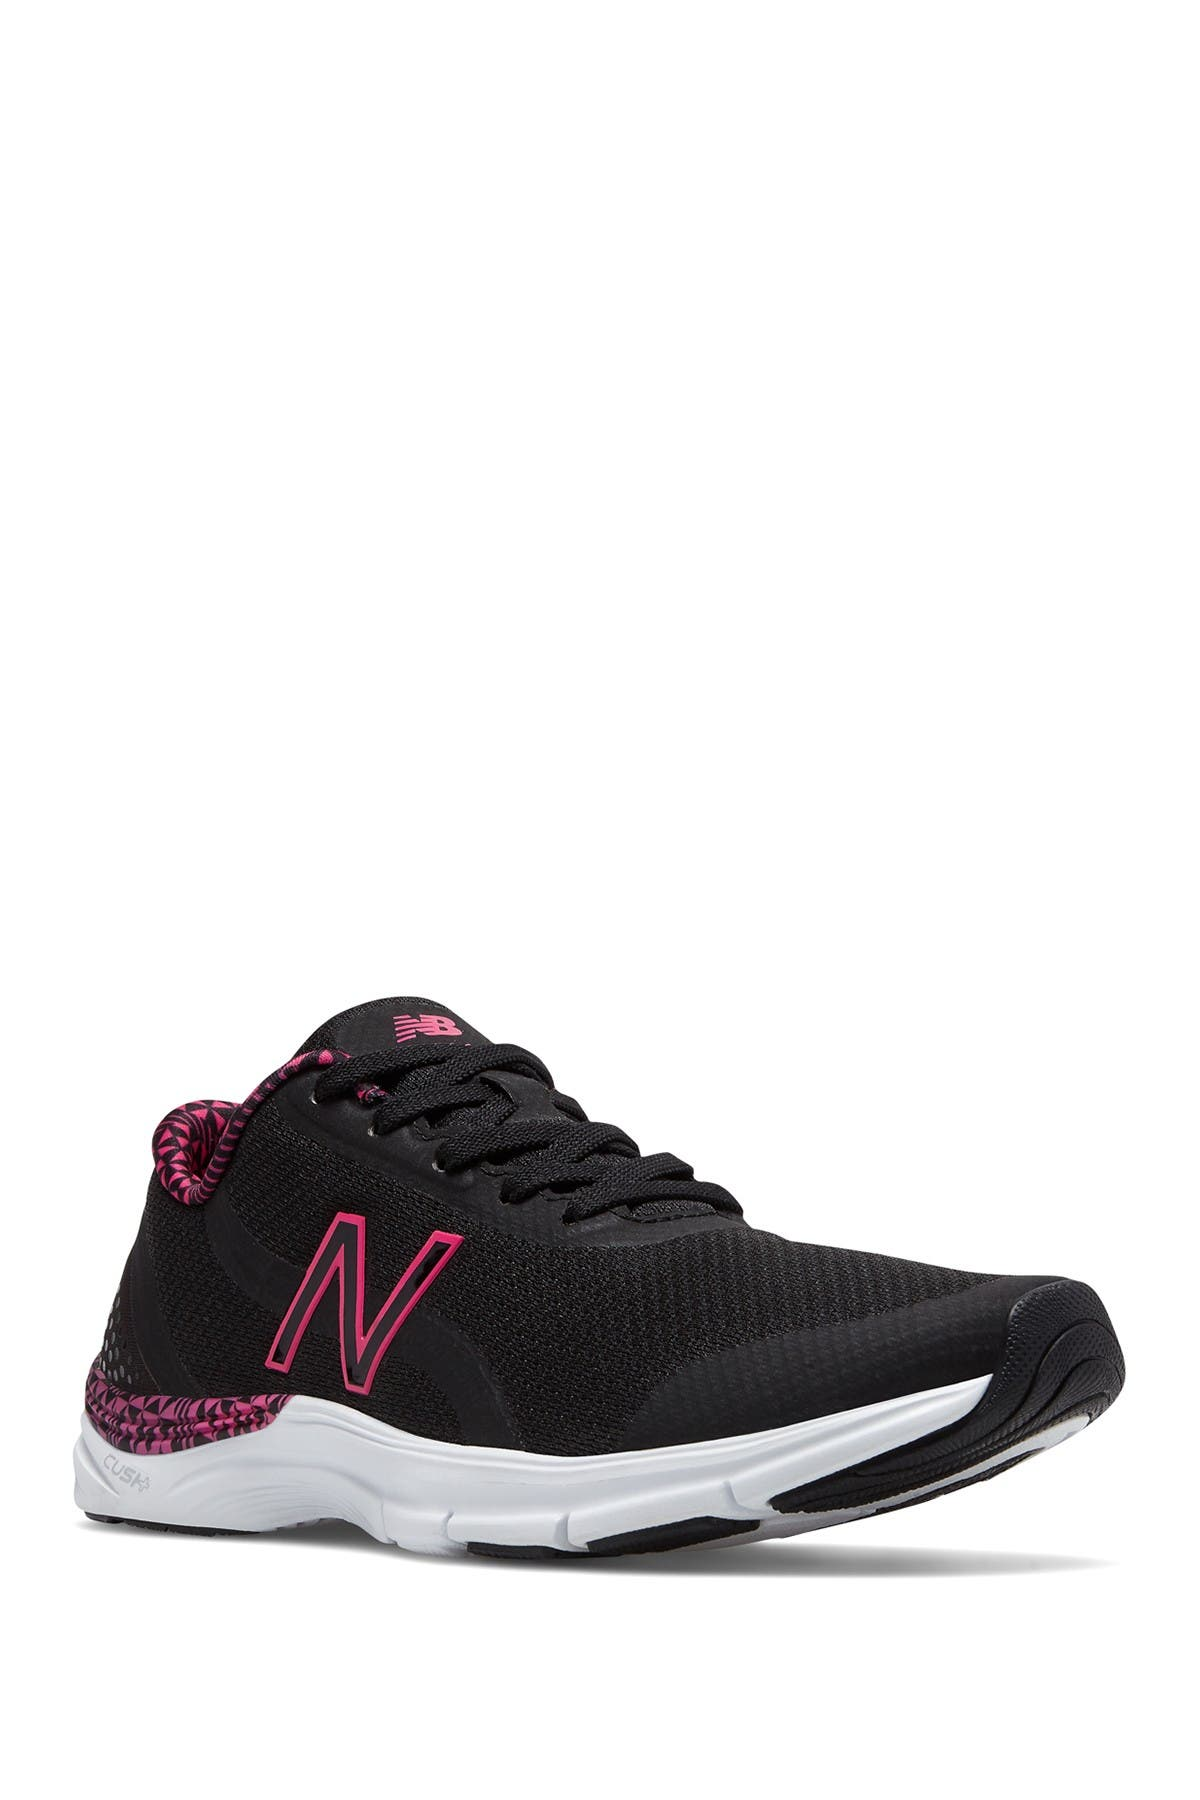 Image of New Balance 711 V3 Sneaker - Wide Width Available